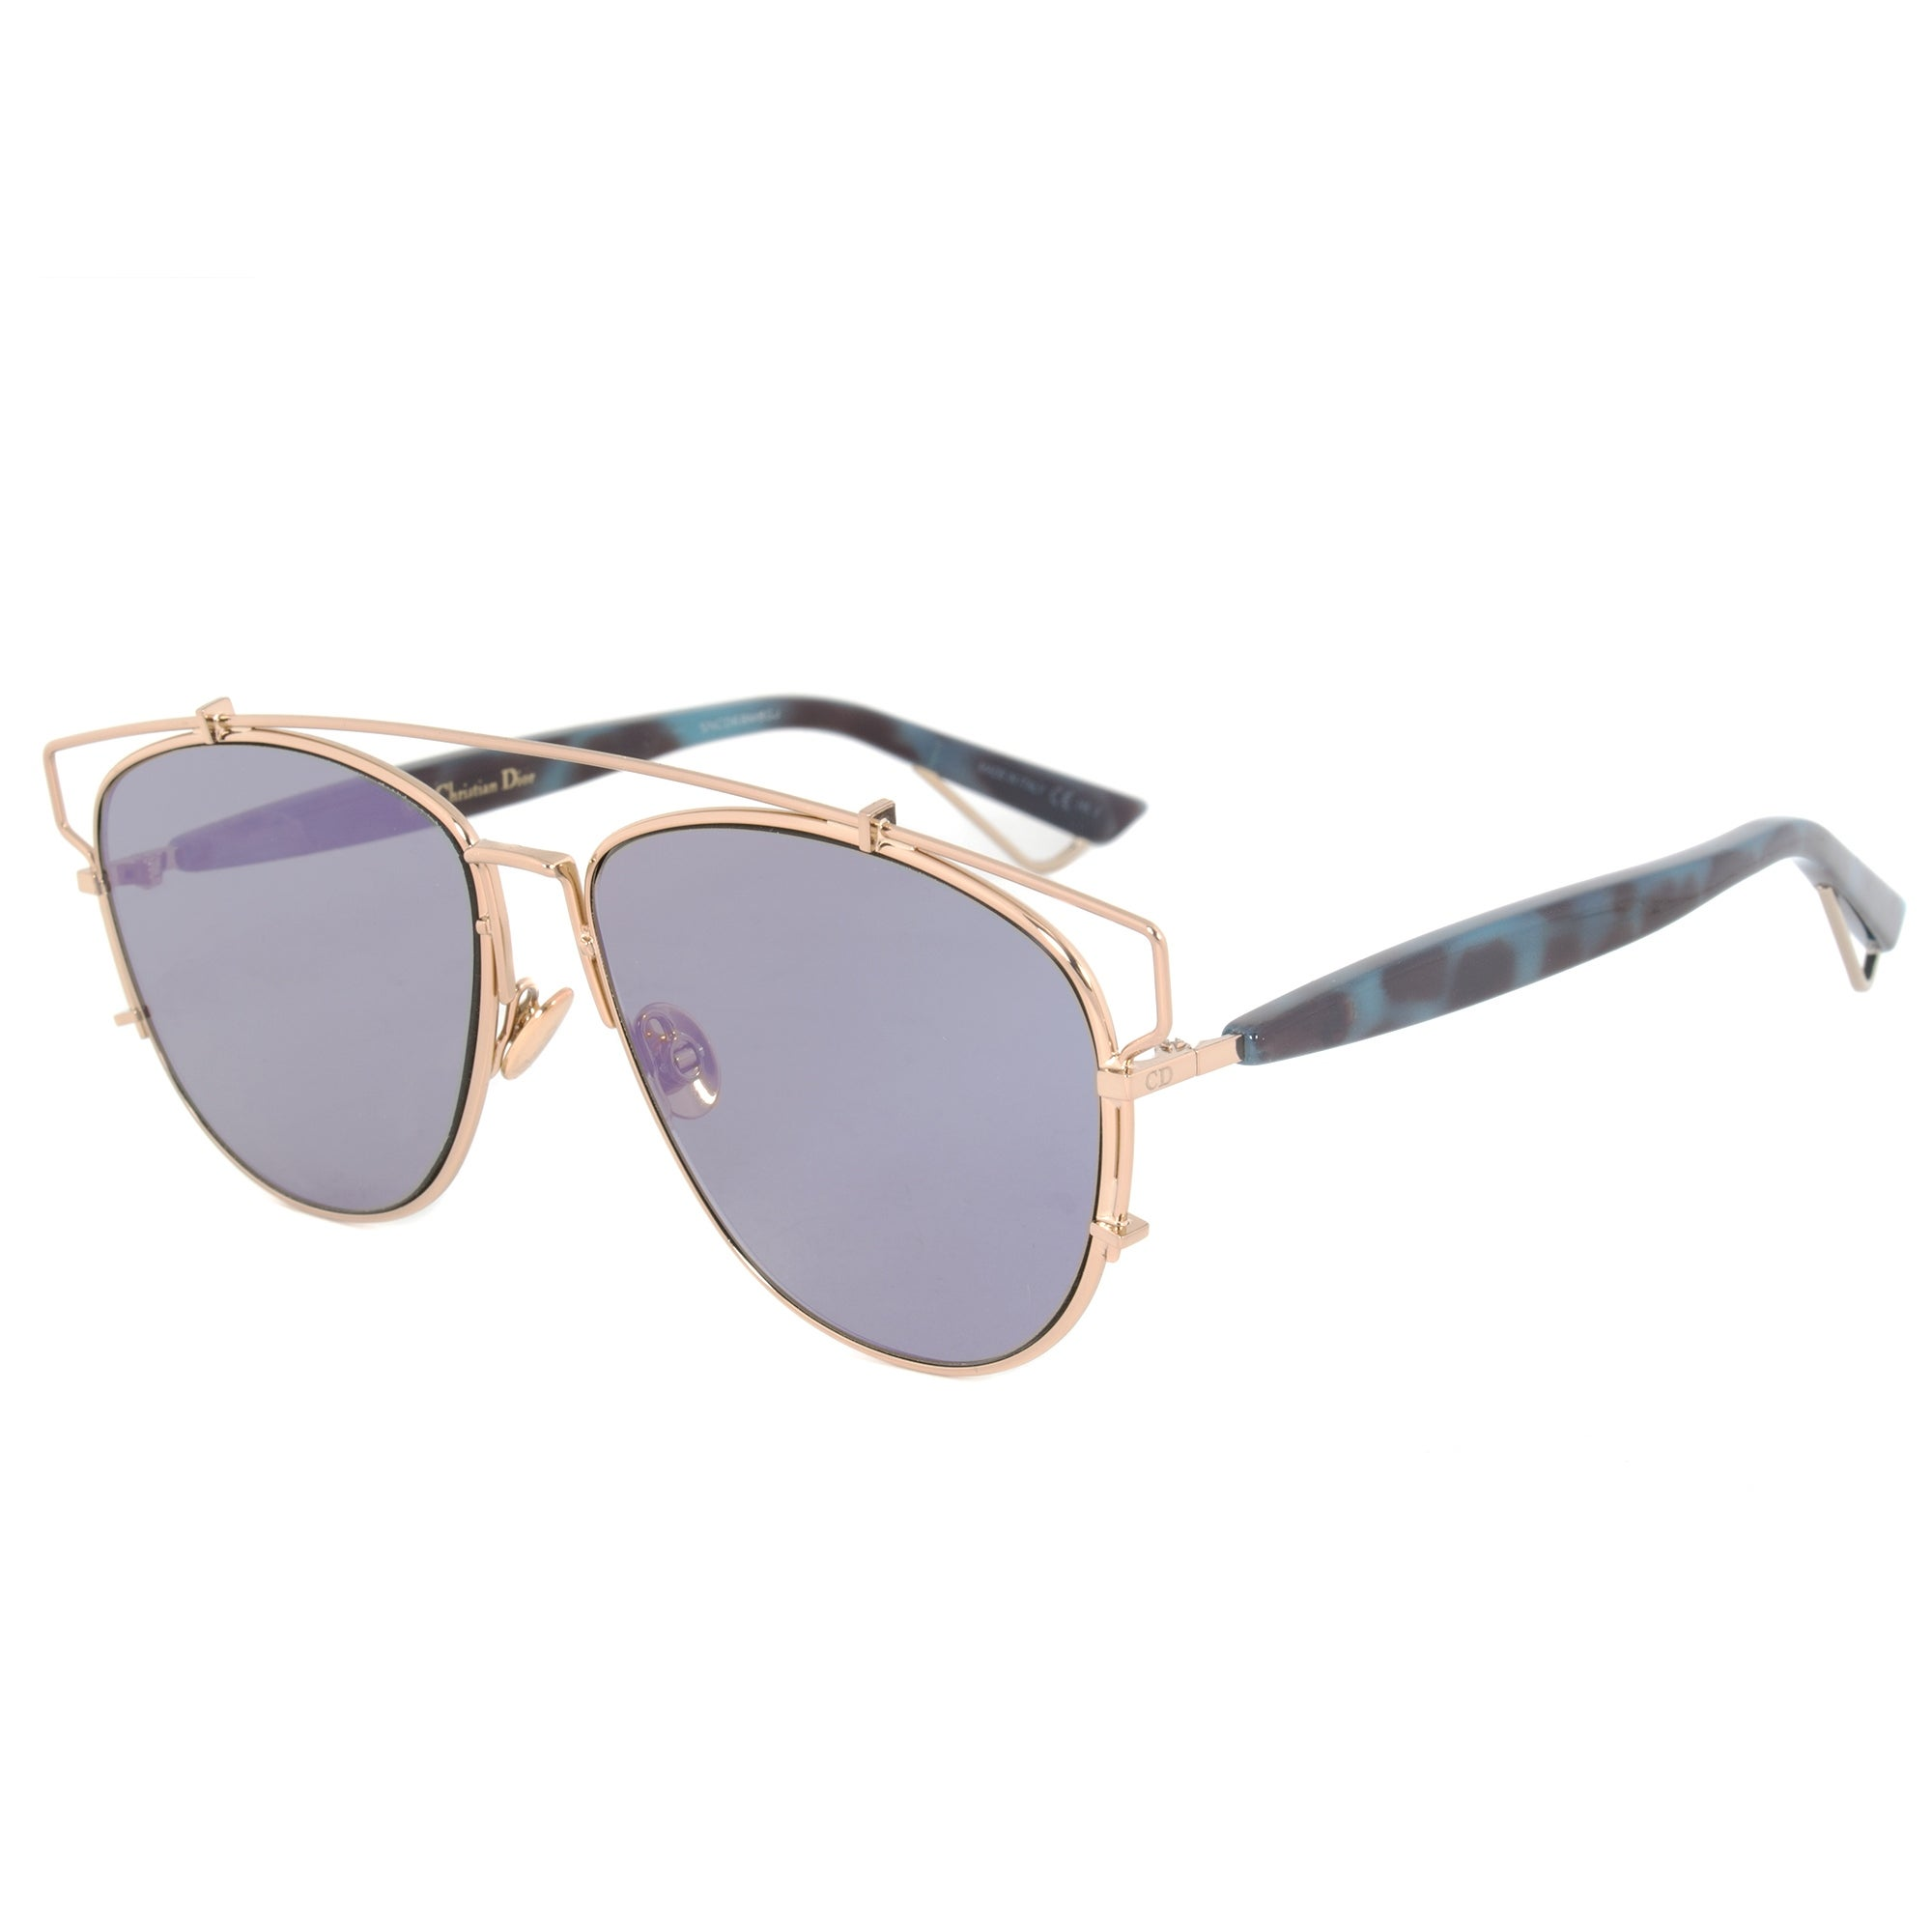 ac478d66fa4 Shop Christian Dior Technologic YEKSX Sunglasses - Free Shipping Today -  Overstock.com - 19622231